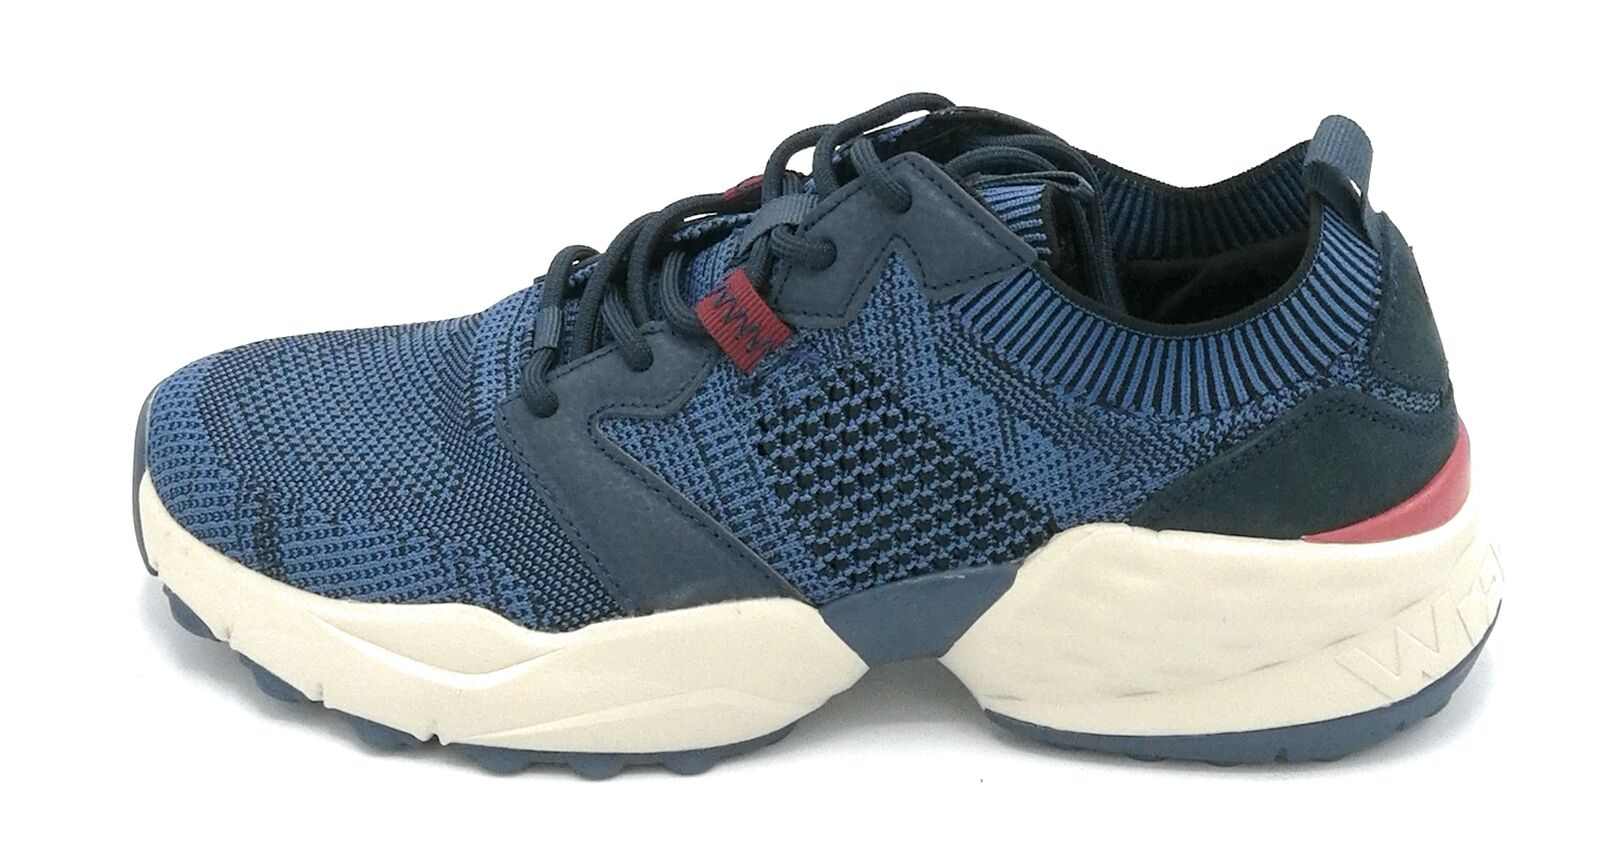 Wrangler WM01100 Sneaker Laces Stretch Fabric Air Force Blue W